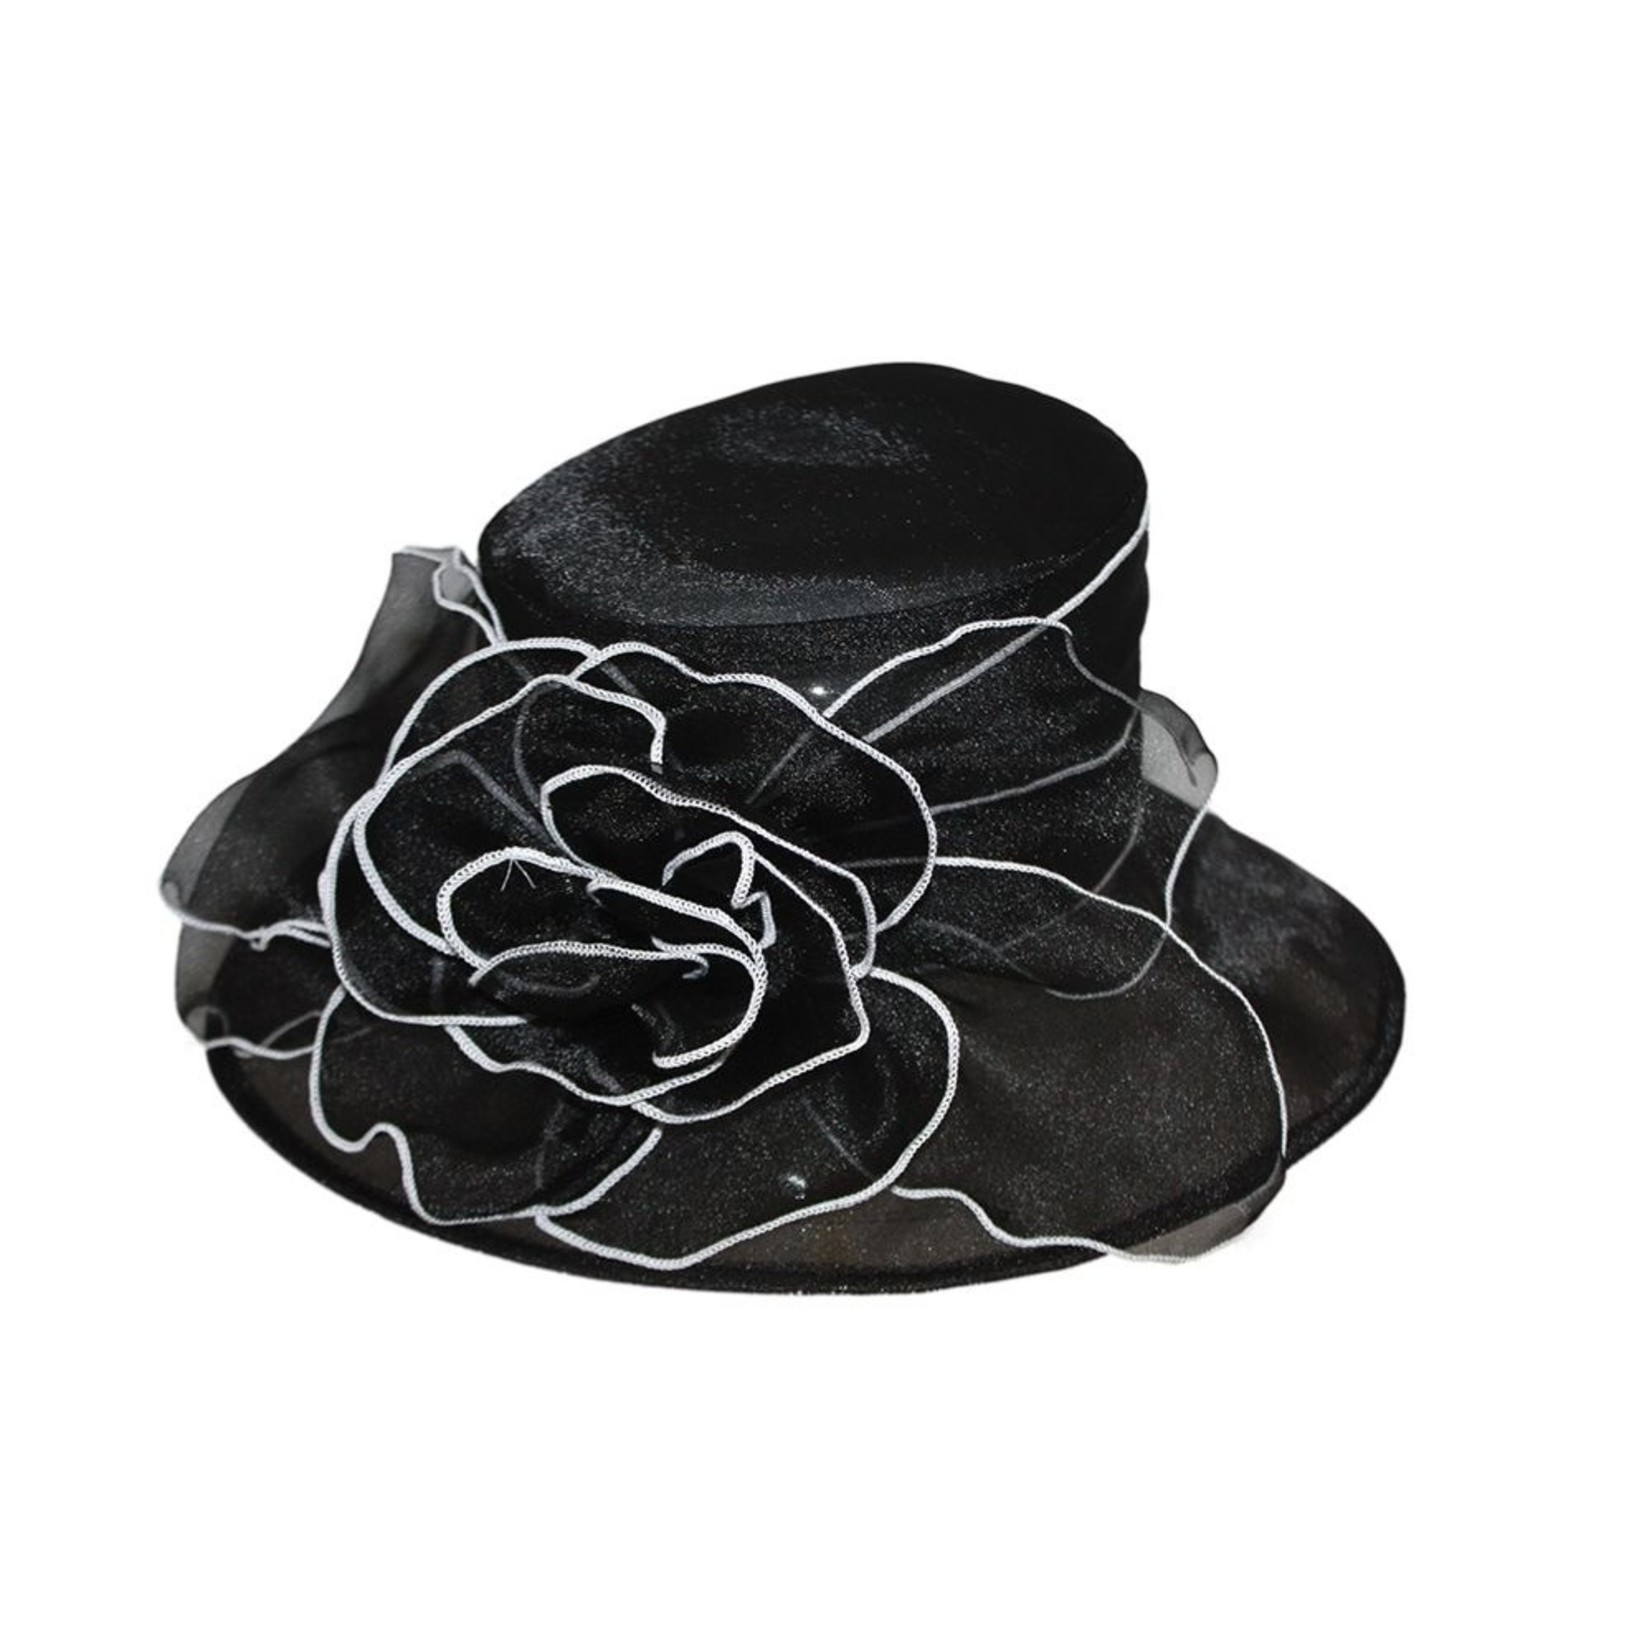 Jeanne Simmons Black Hat w/ xlrg Brim and Wire B/W Floral accent